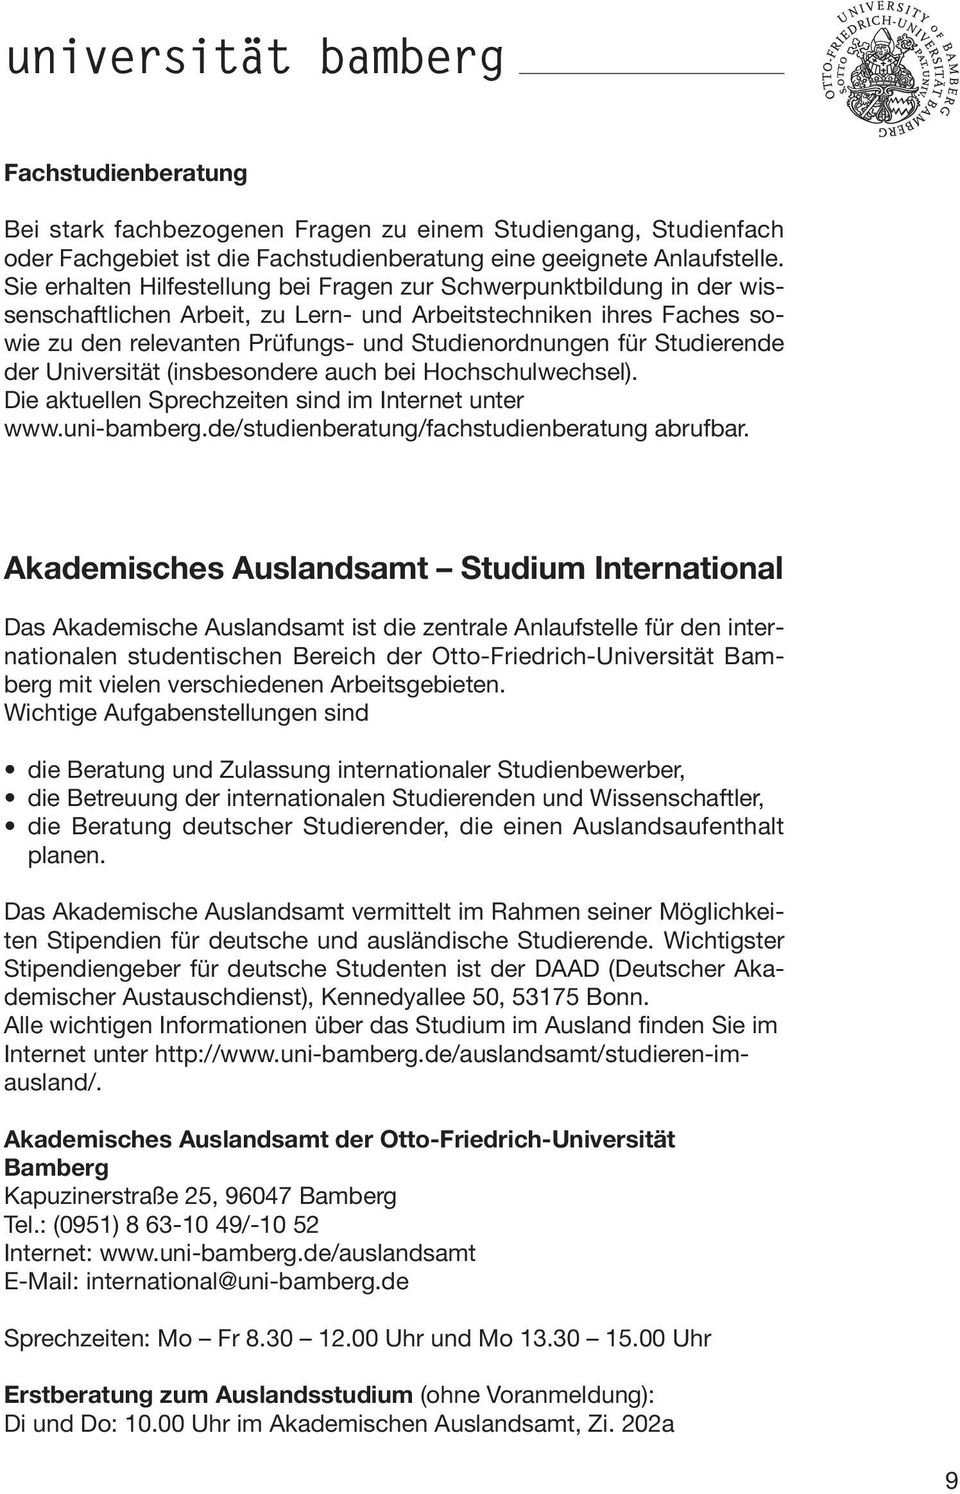 Tolle Student Setzt Für Stipendien Fort Galerie - Entry Level Resume ...